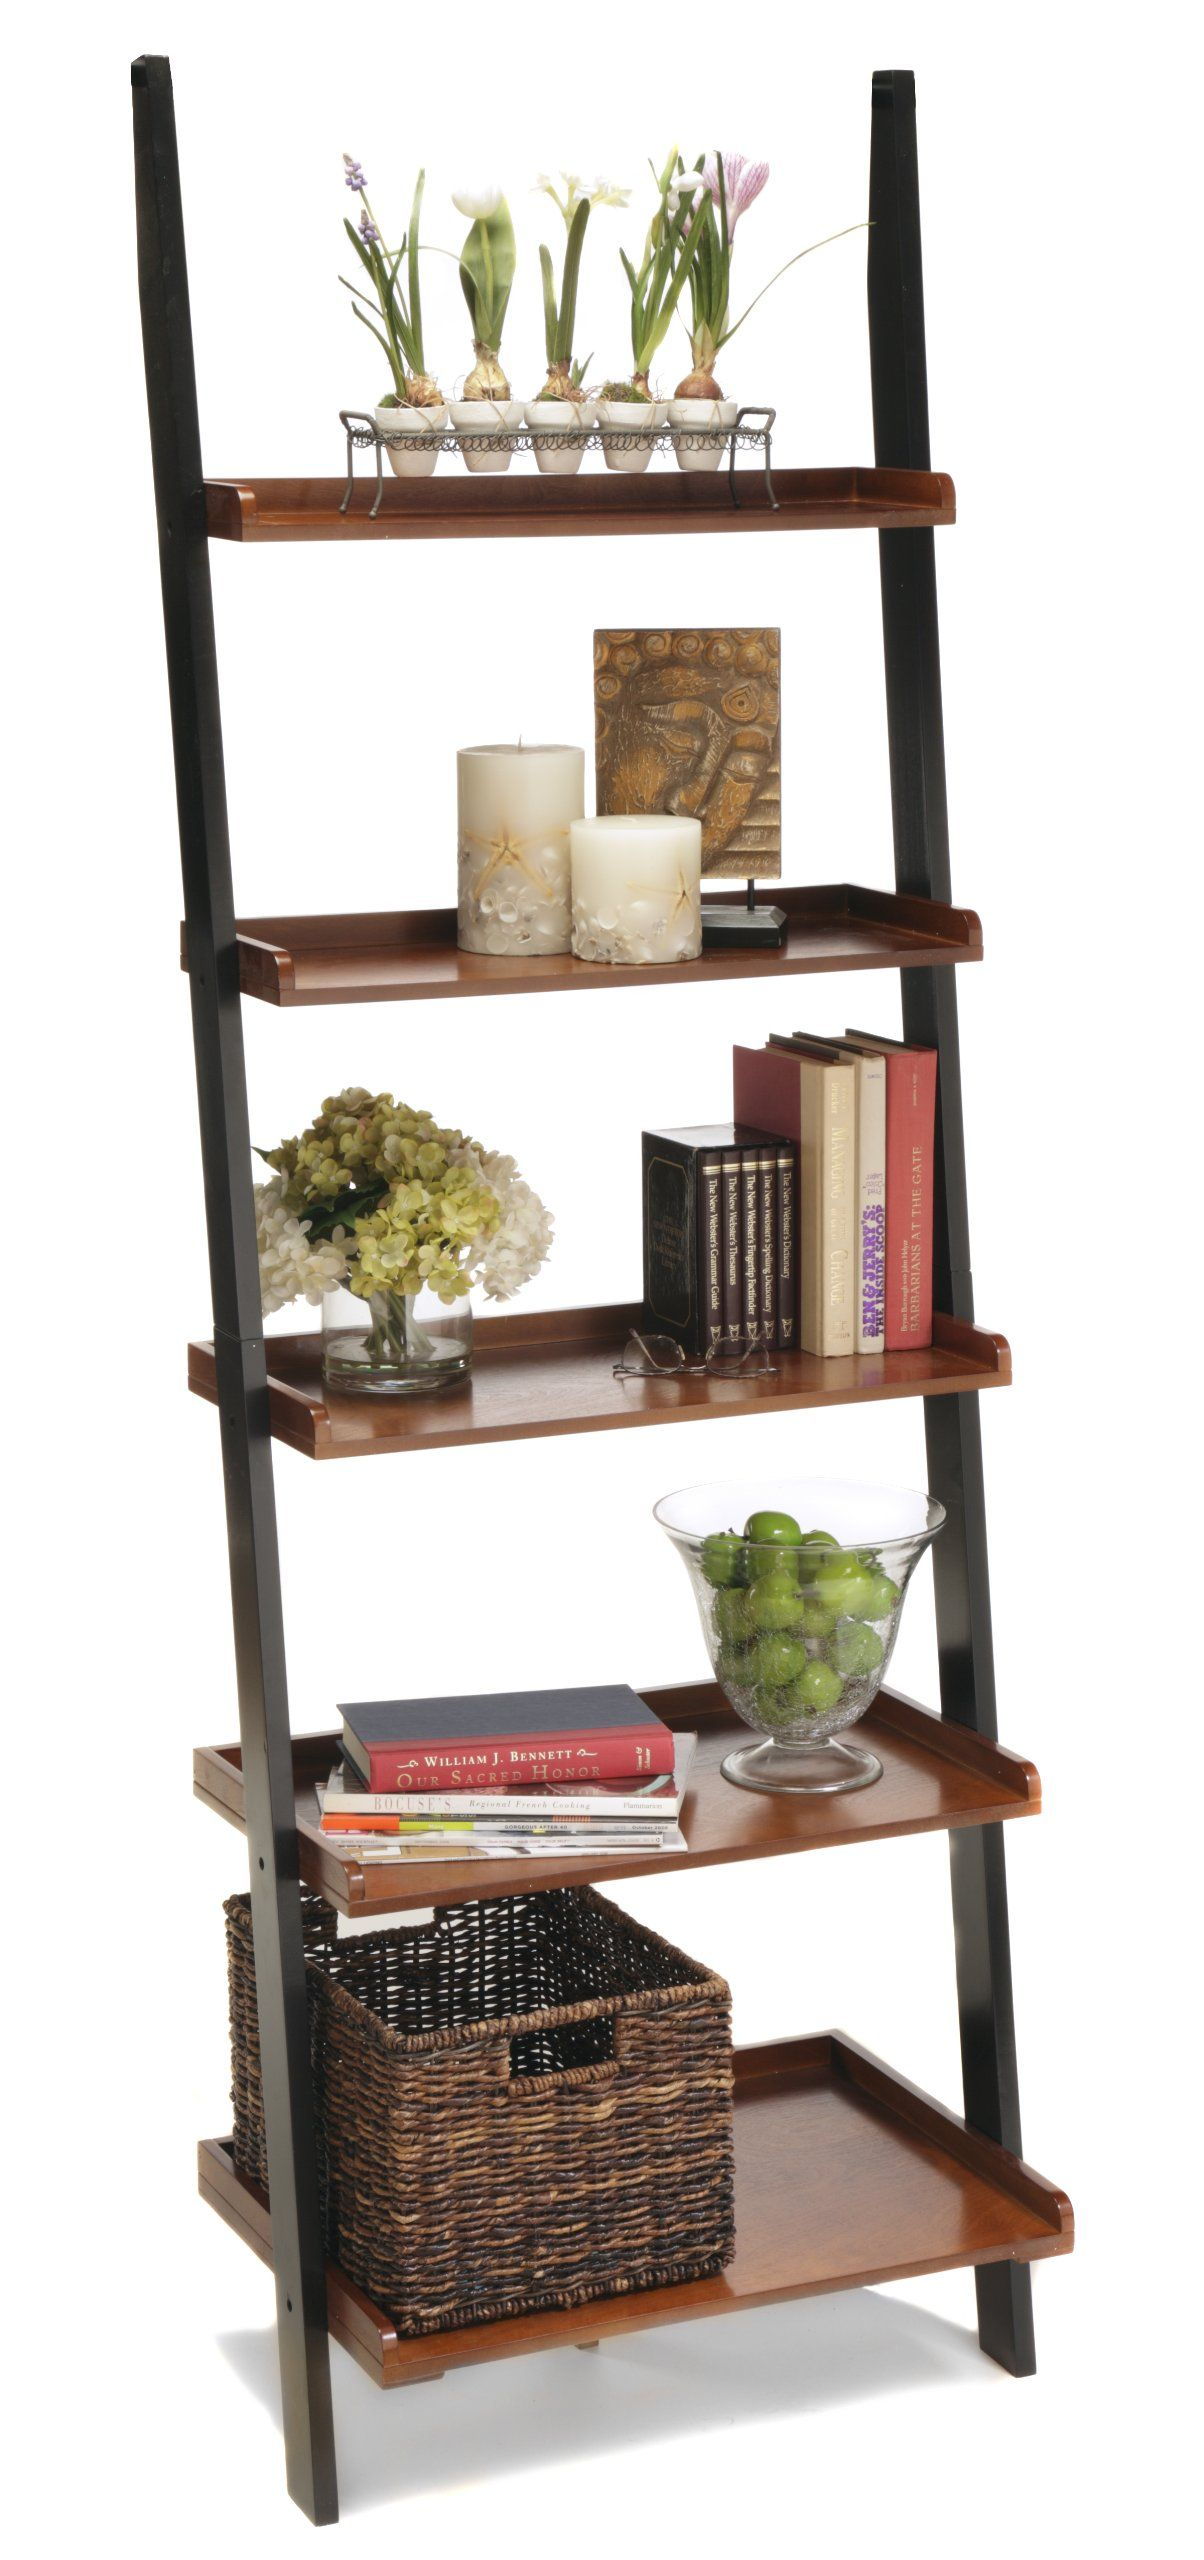 Convenience Concepts 8043391 FC French Country Bookshelf Ladder, Natural:  Amazon.ca: